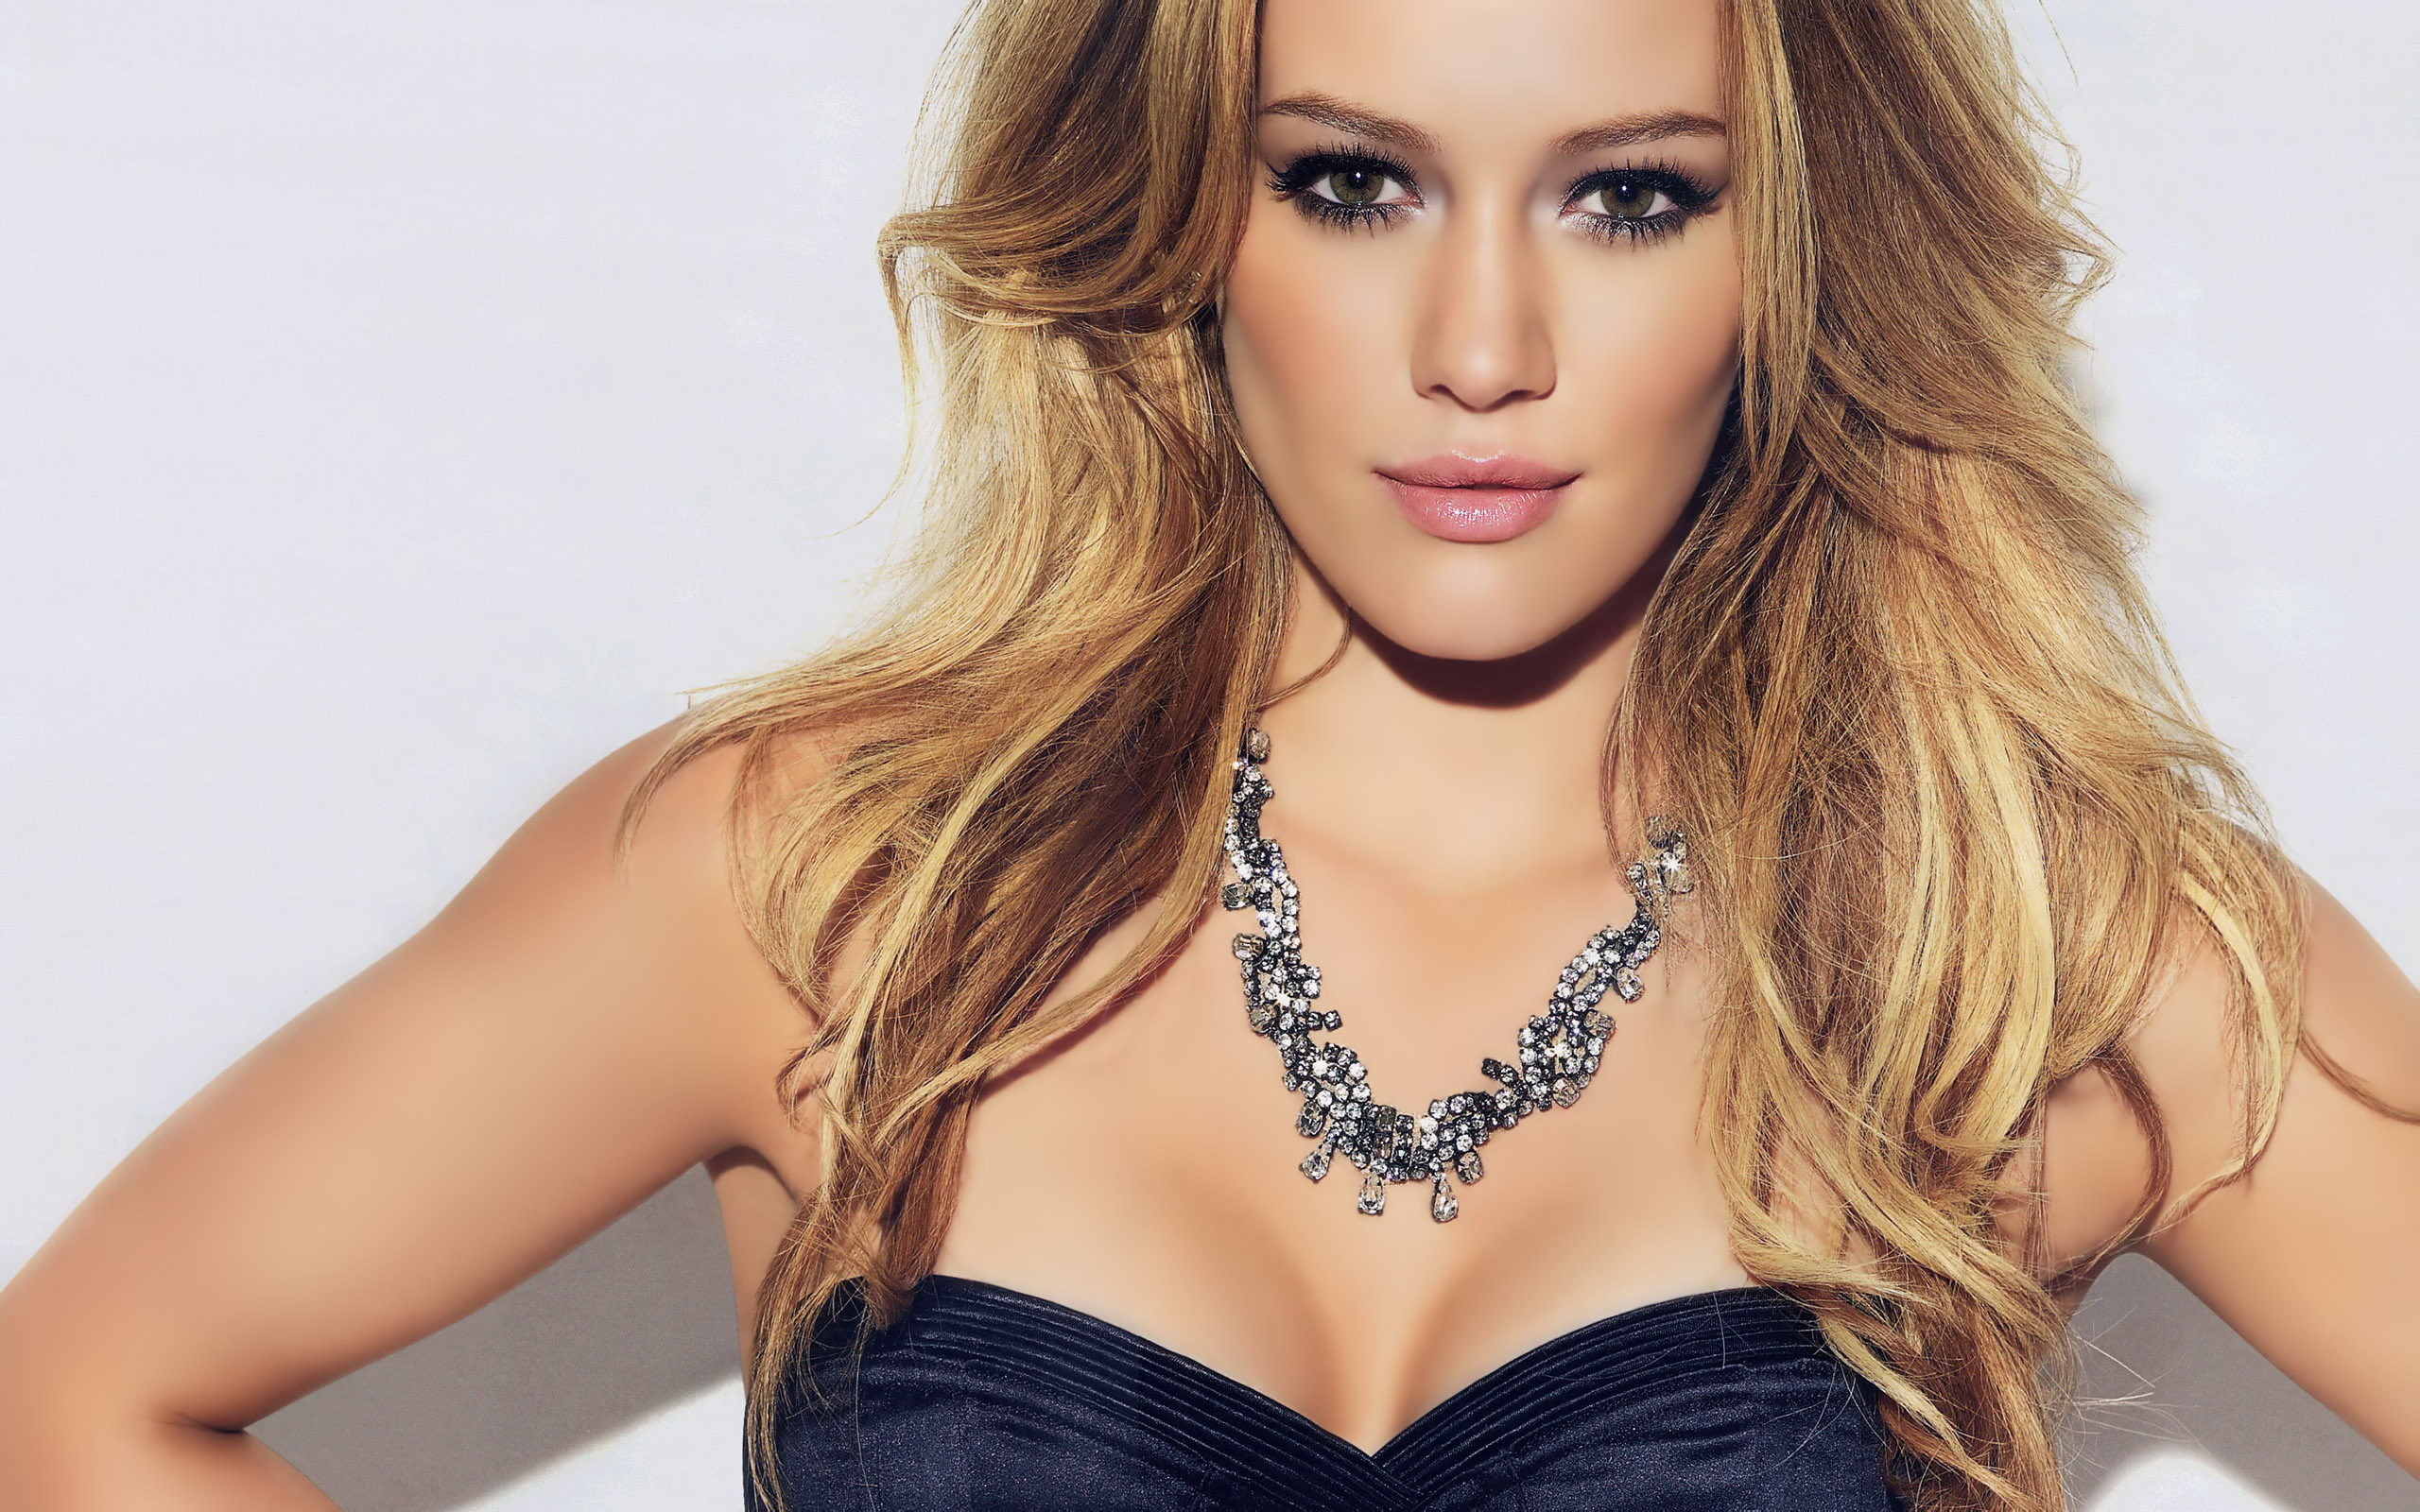 hilary duff hot desktop wallpaper